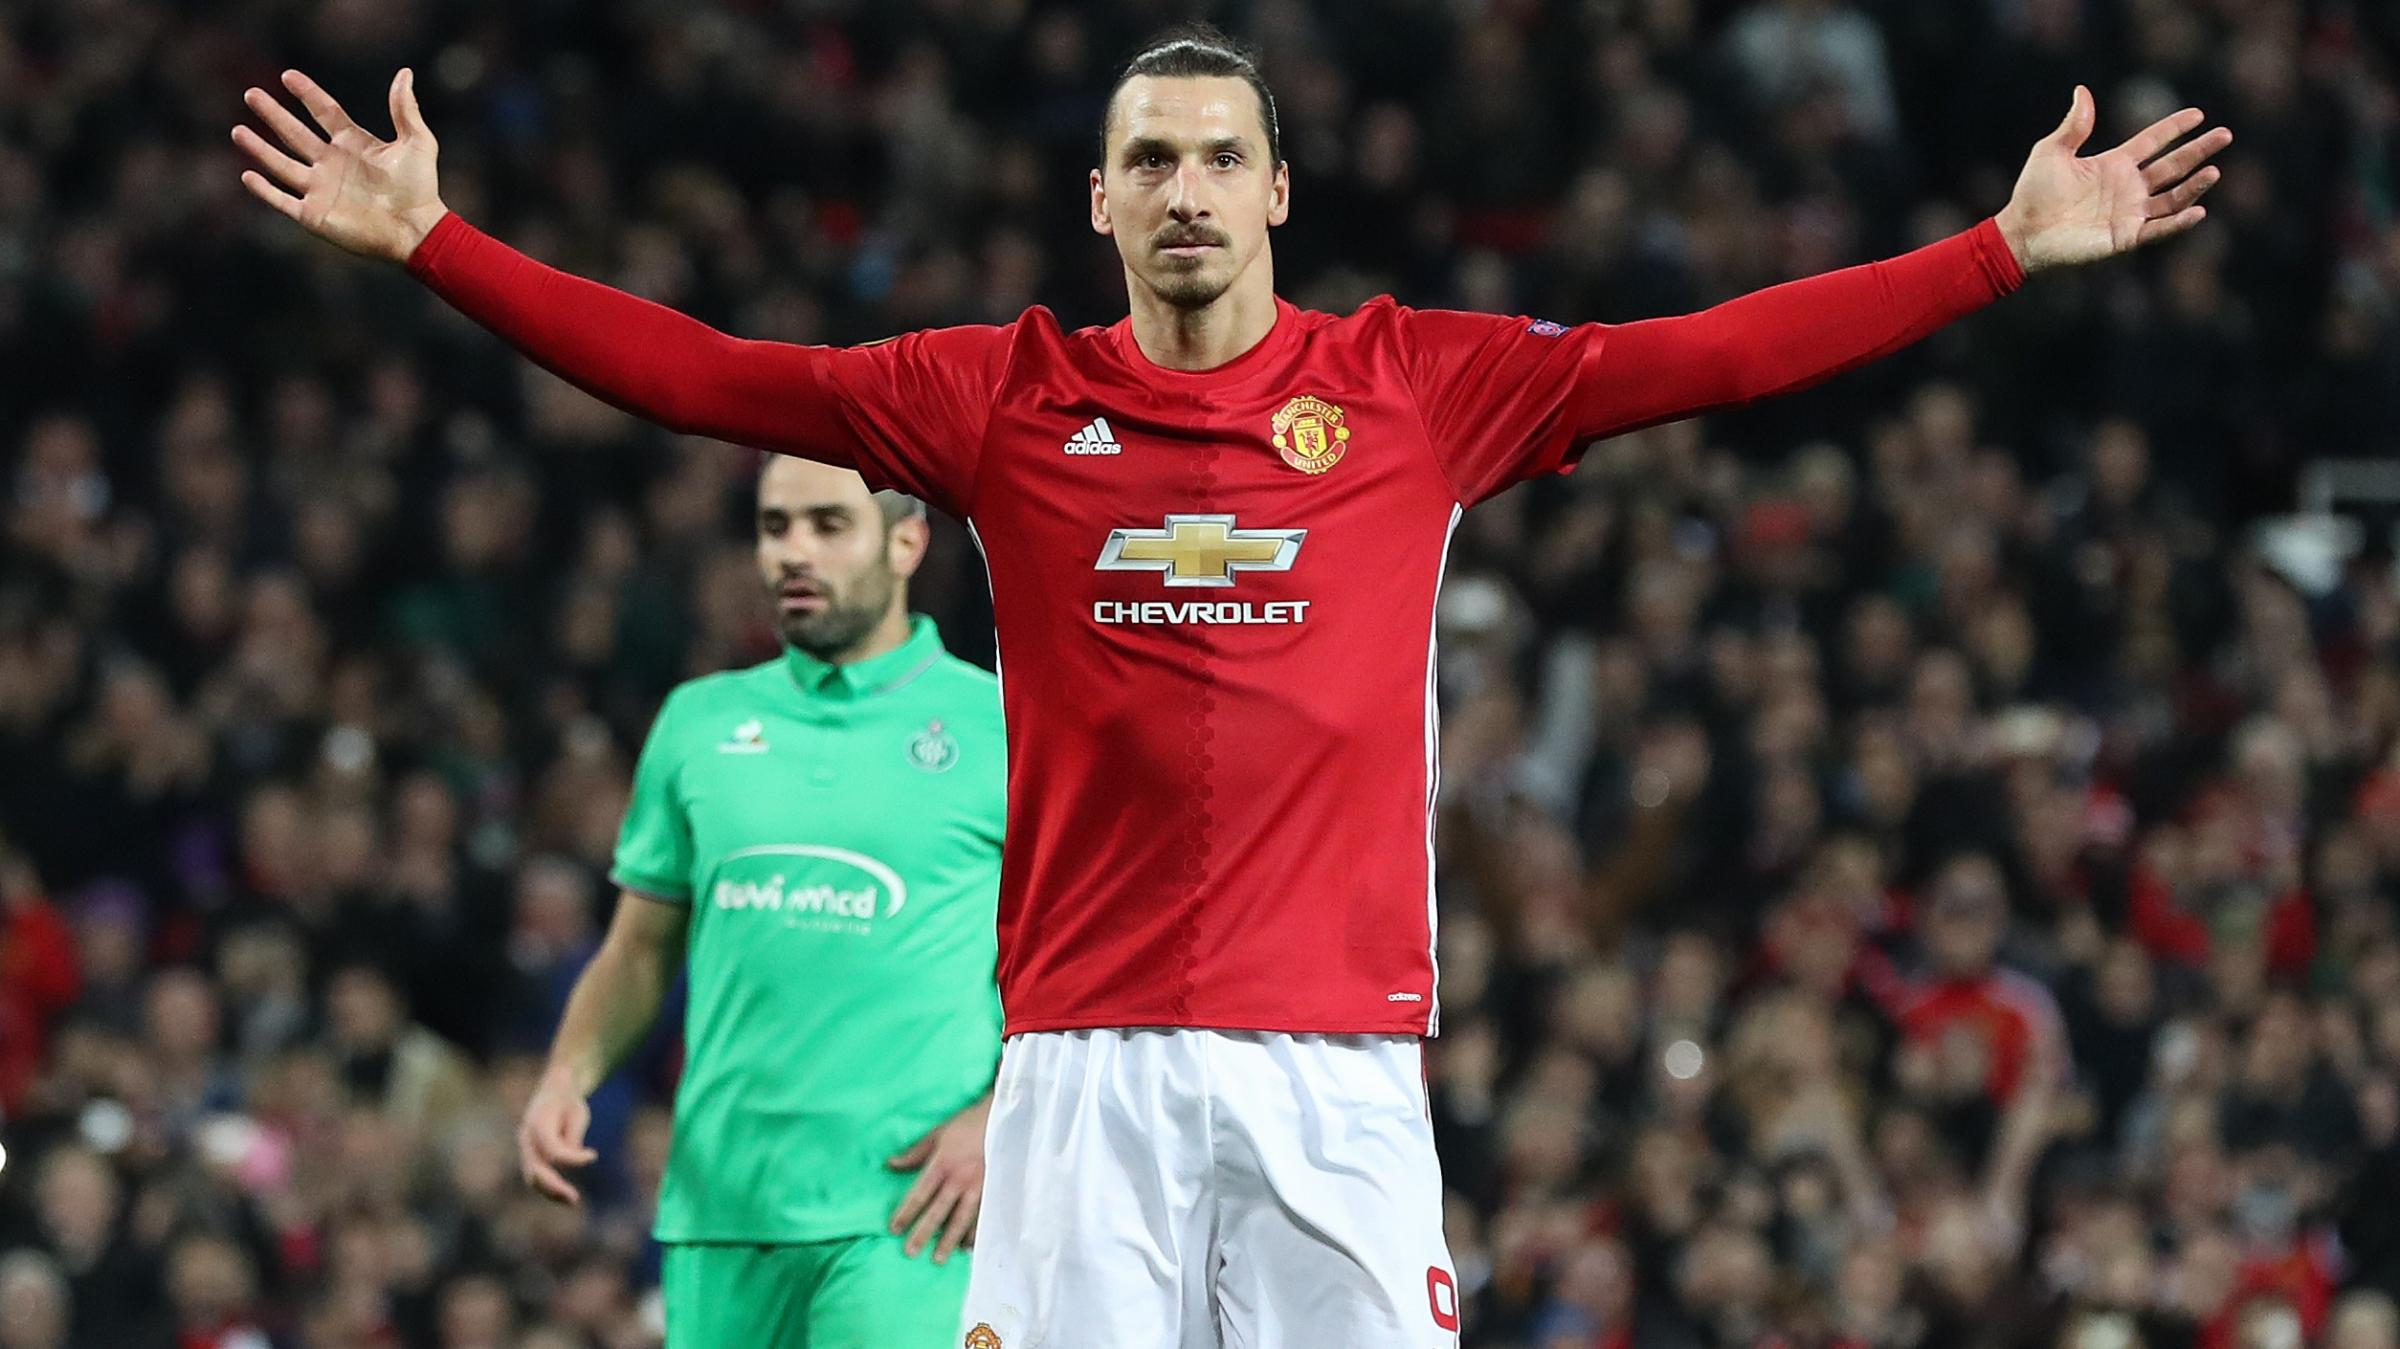 Zlatan Ibrahimovic posts message after being officially released by Man United